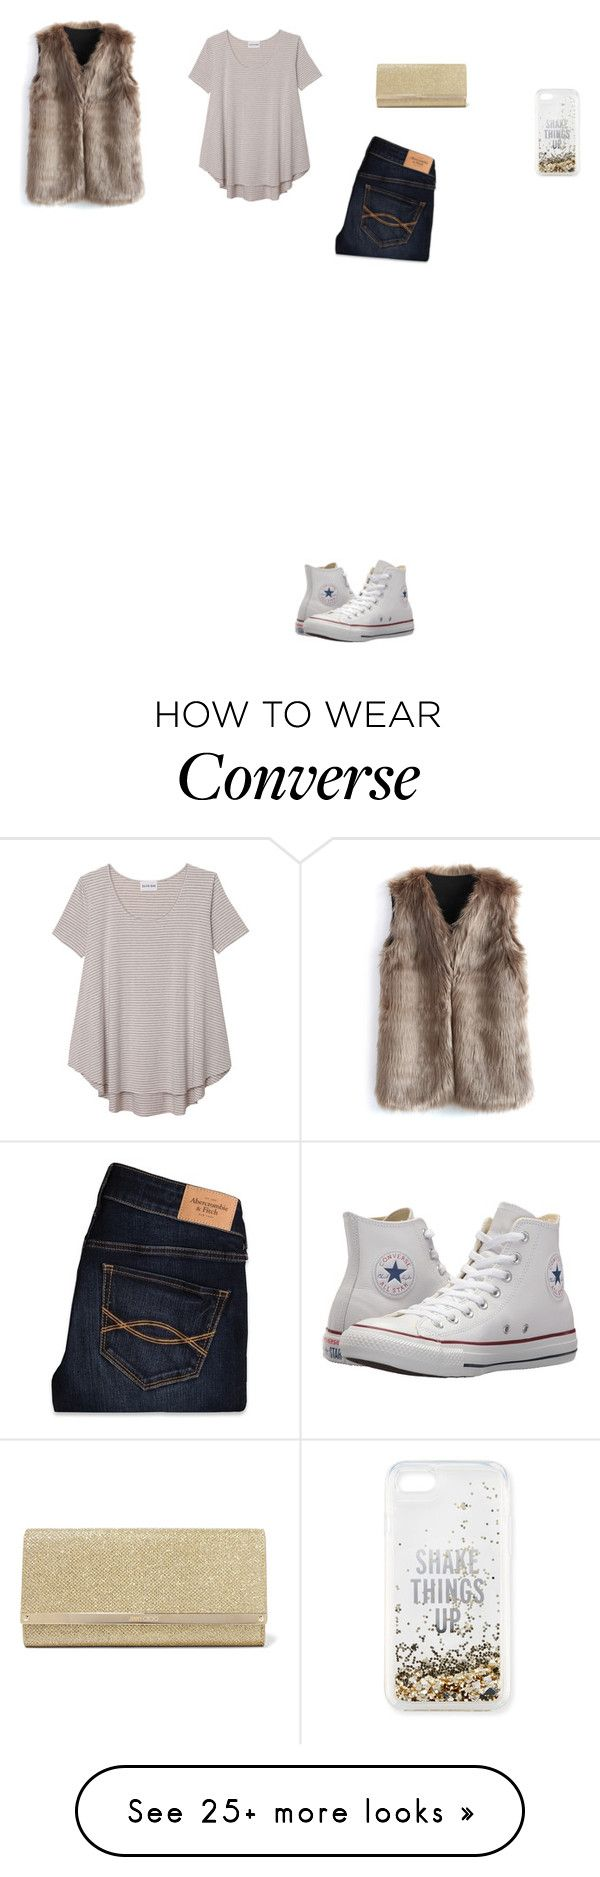 """Untitled #5347"" by anamaria-zgimbau on Polyvore featuring Kate Spade, Chicwish, Olive + Oak, Abercrombie & Fitch, Converse and Jimmy Choo"